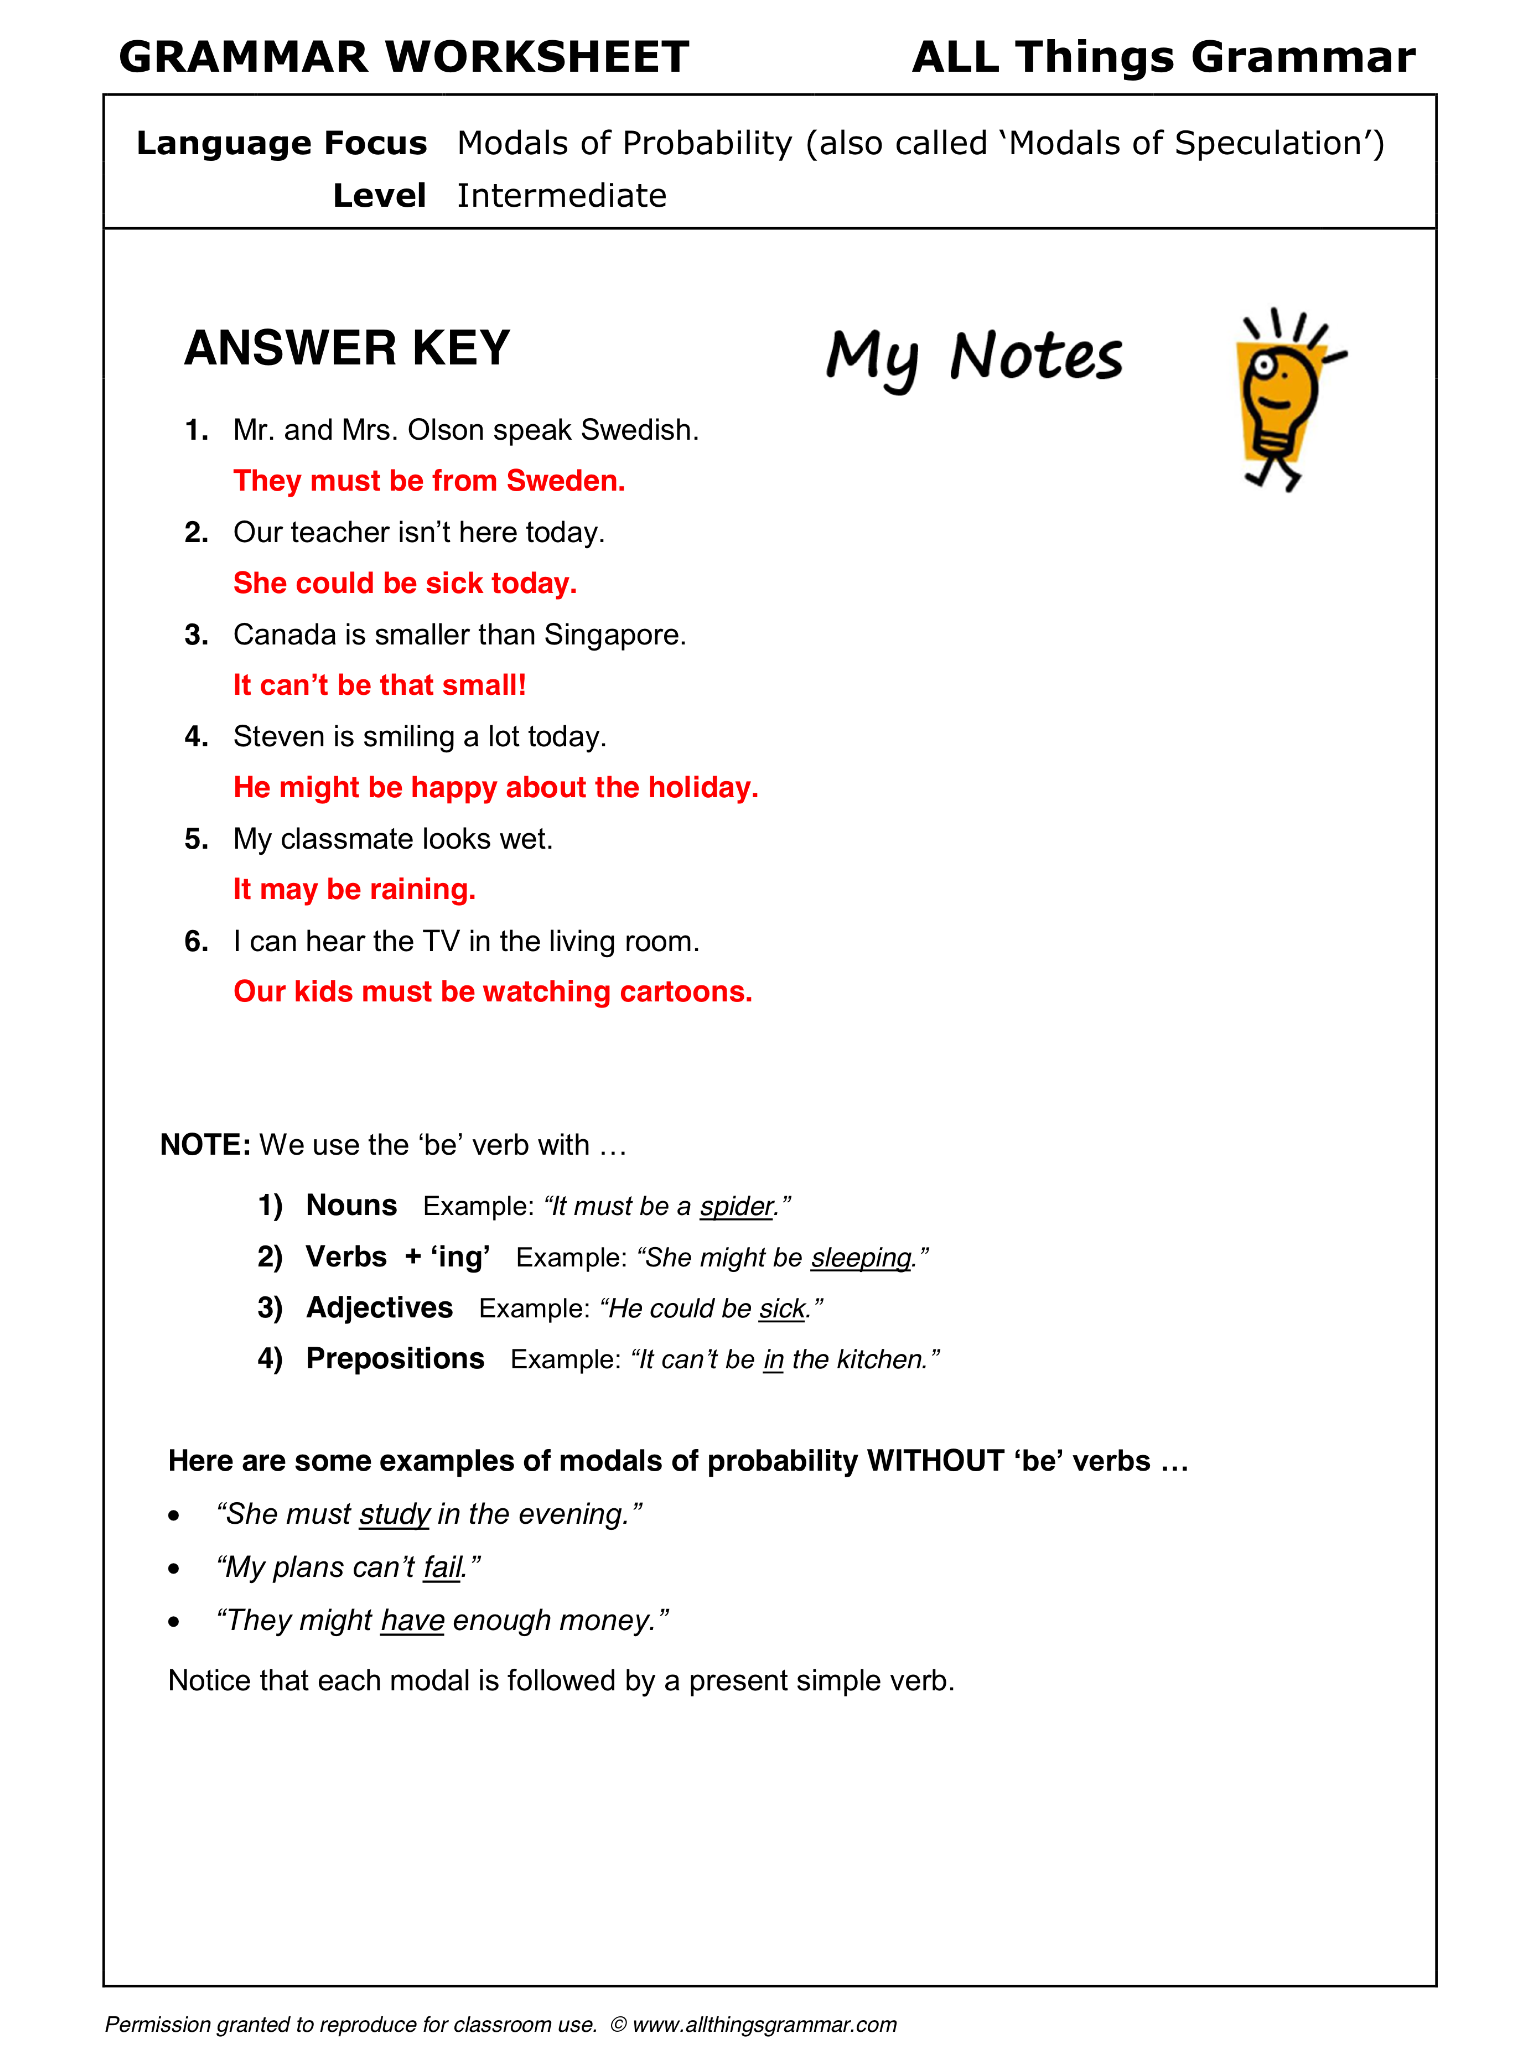 English Grammar Modals Of Probability With Be For